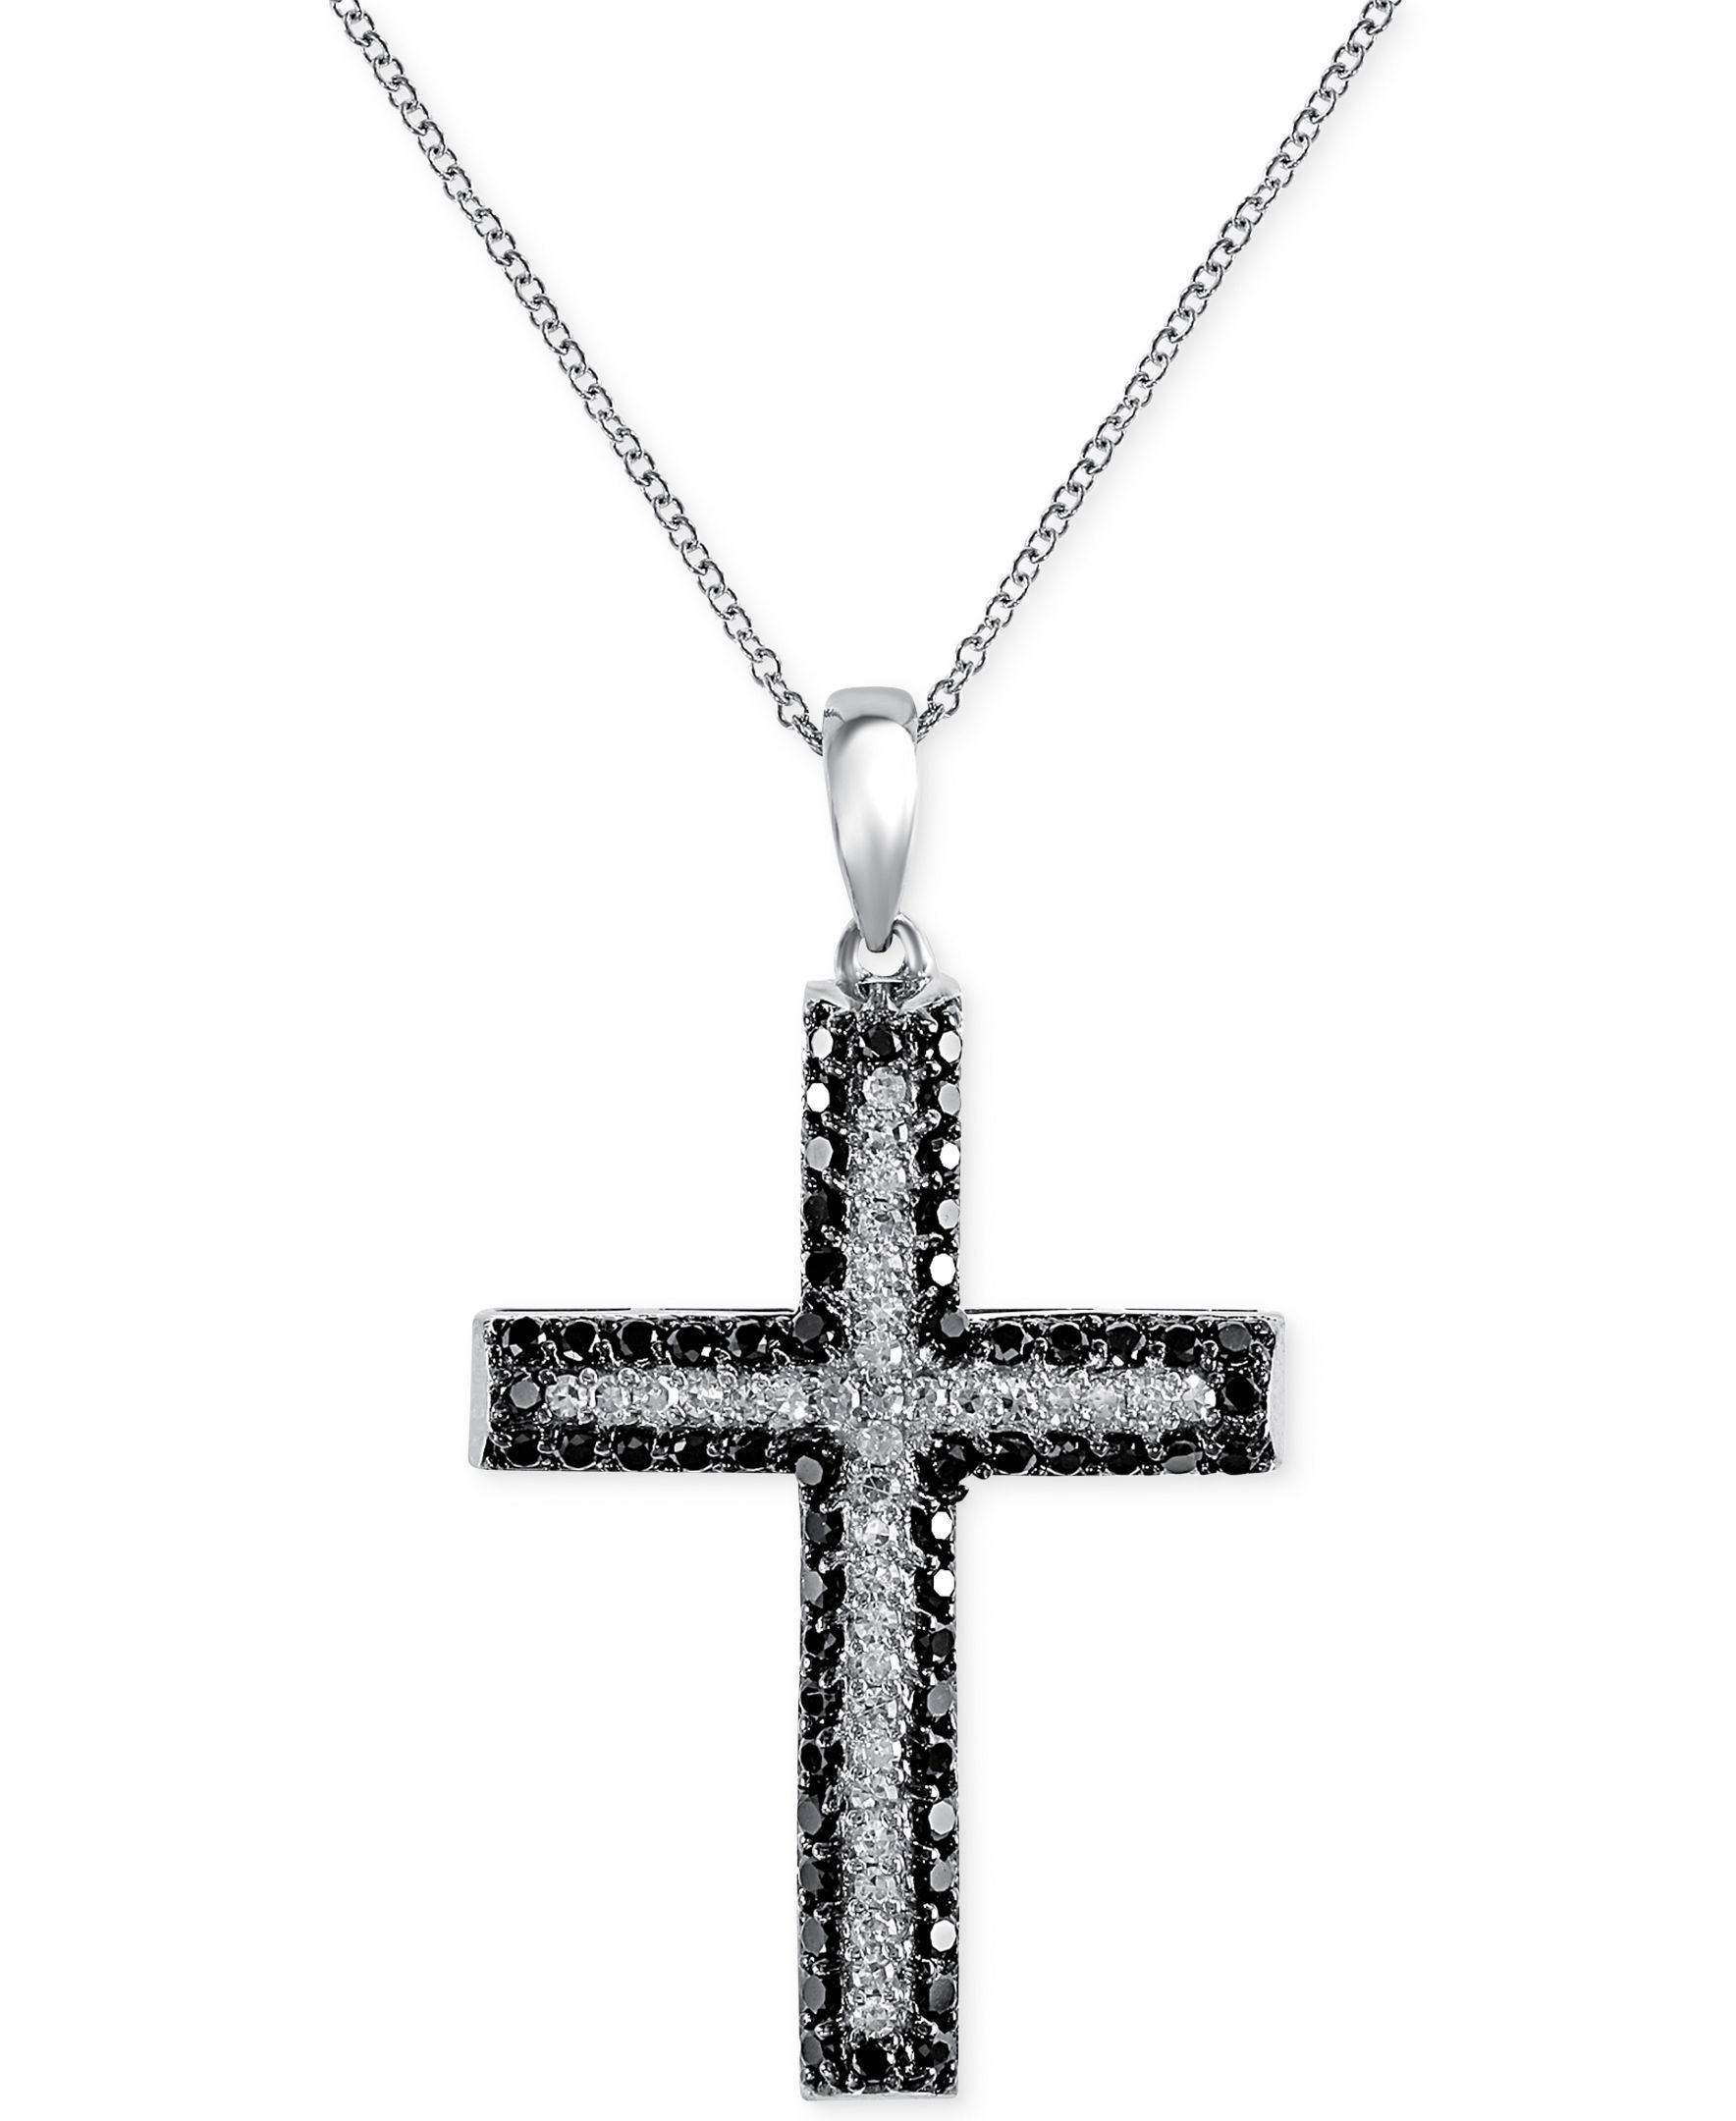 Effy Diamond Cross Pendant Necklace 5 8 ct t w in 14k White